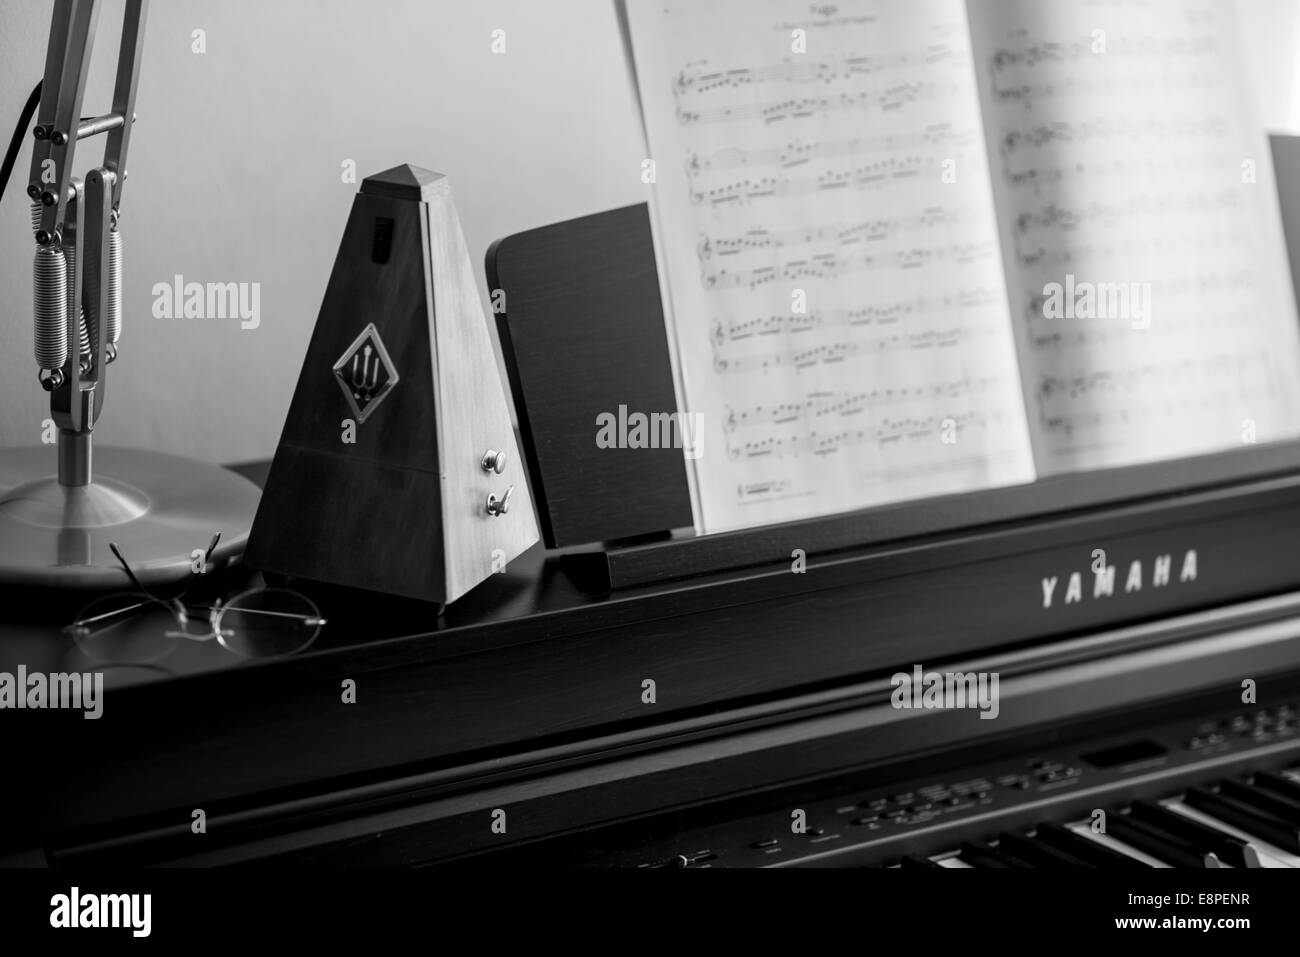 Metronome on Piano - learning a musical instrument - Stock Image